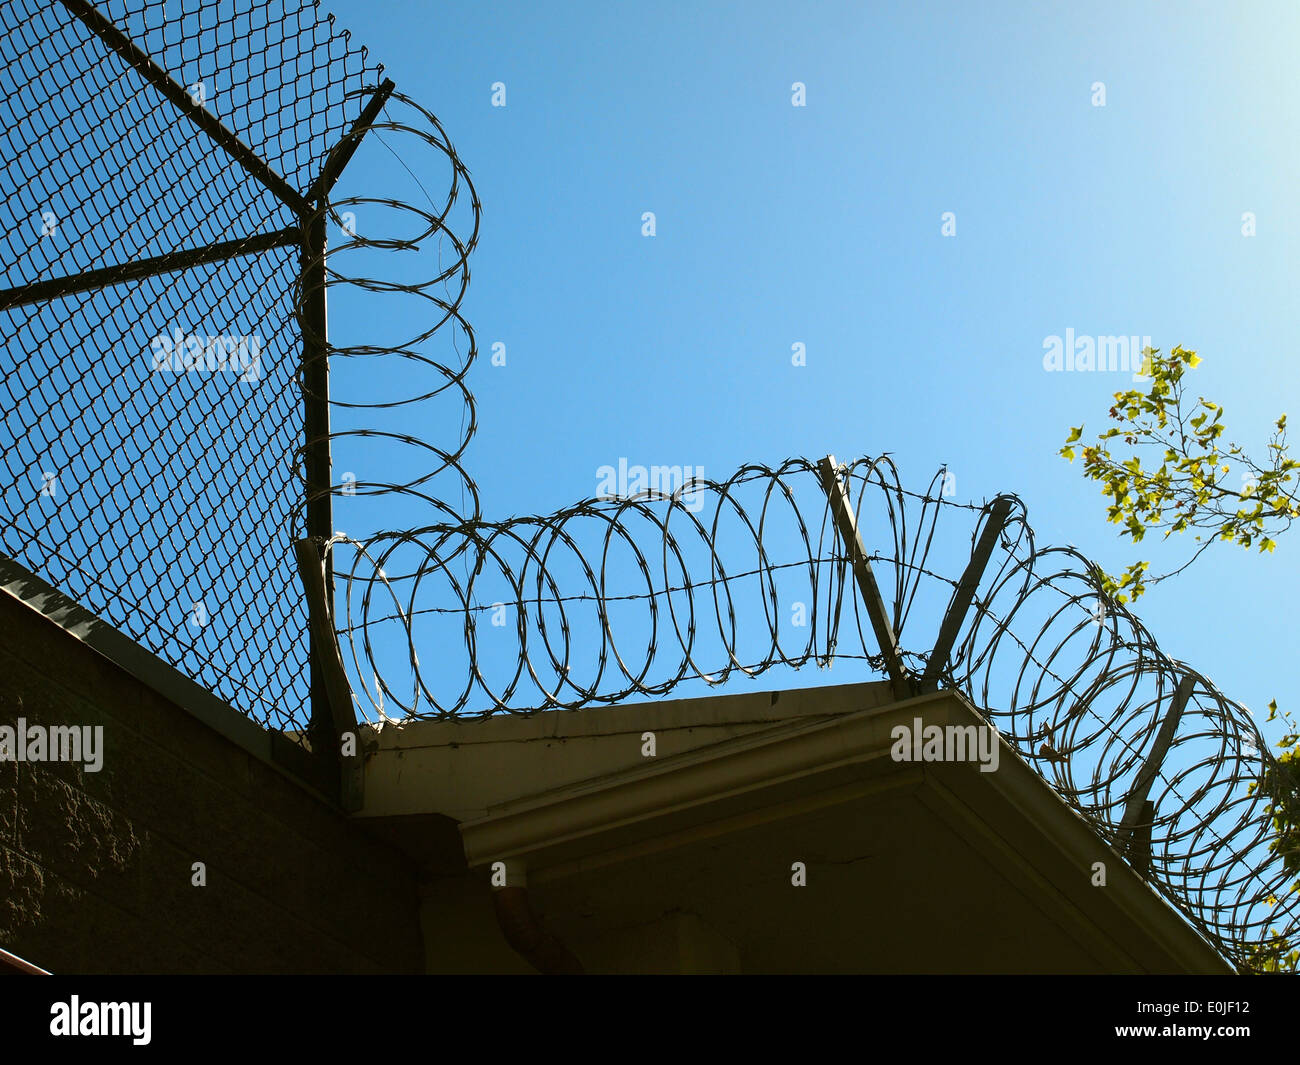 razor wire on top of Consulate General of the People's Republic of China San Francisco - Stock Image